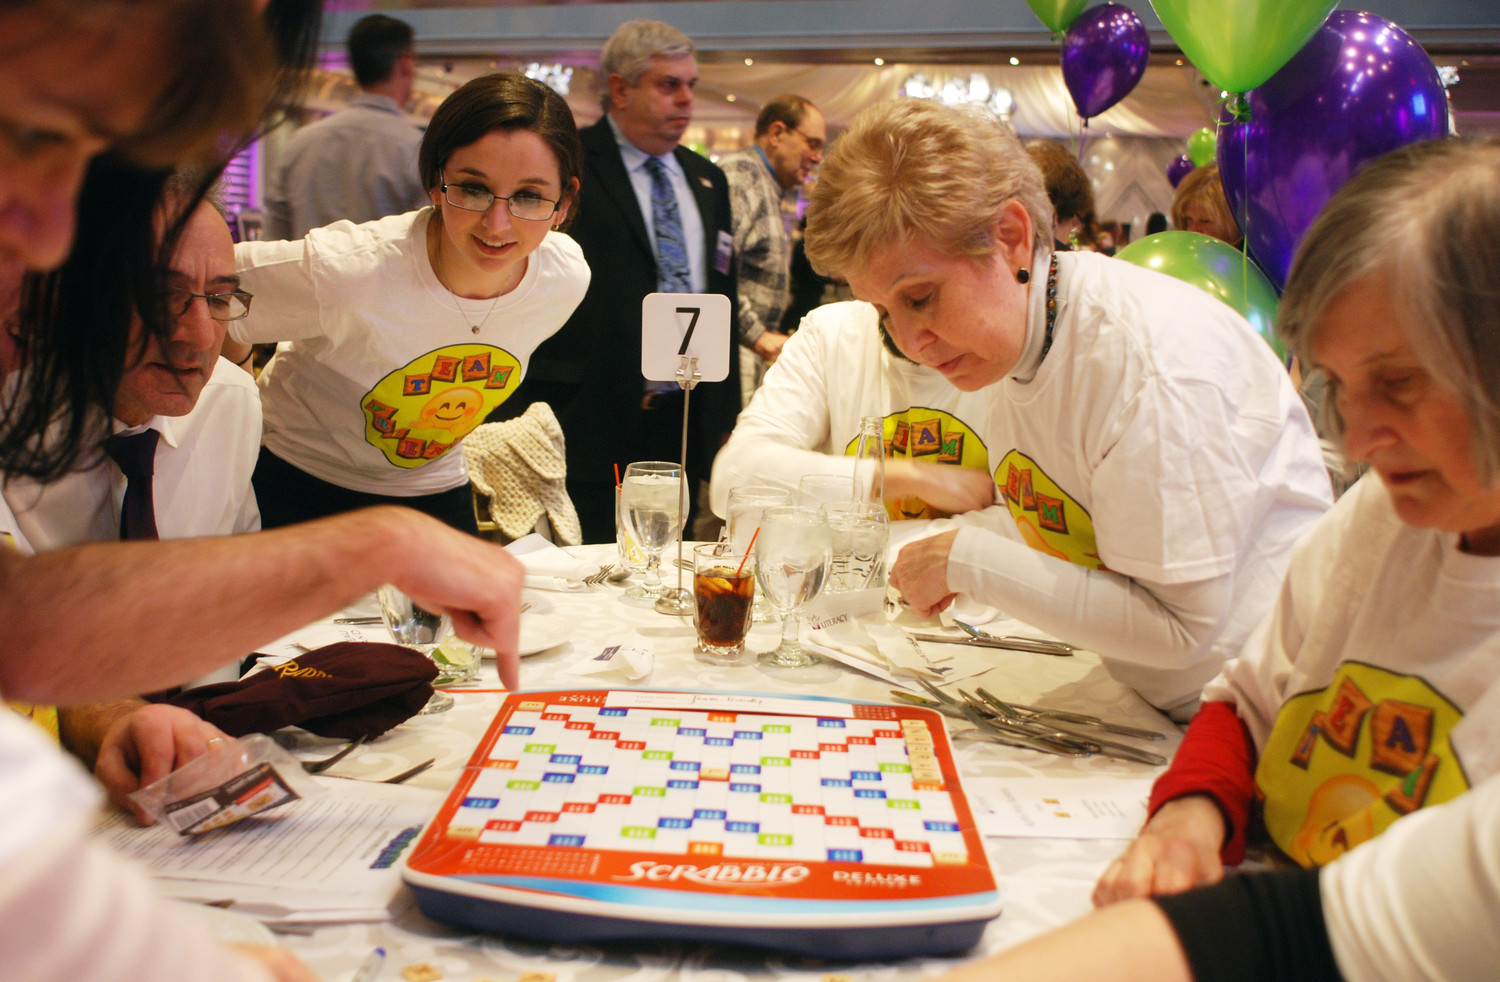 Meredith Chesler, back left, joined her team, including, at right, Lynn Brown and Lyn Dobrin, in a competitive game of (un)Scrabble at Literacy Nassau's 50th anniversary gala at Chateau Briand in Carle Place last Thursday.